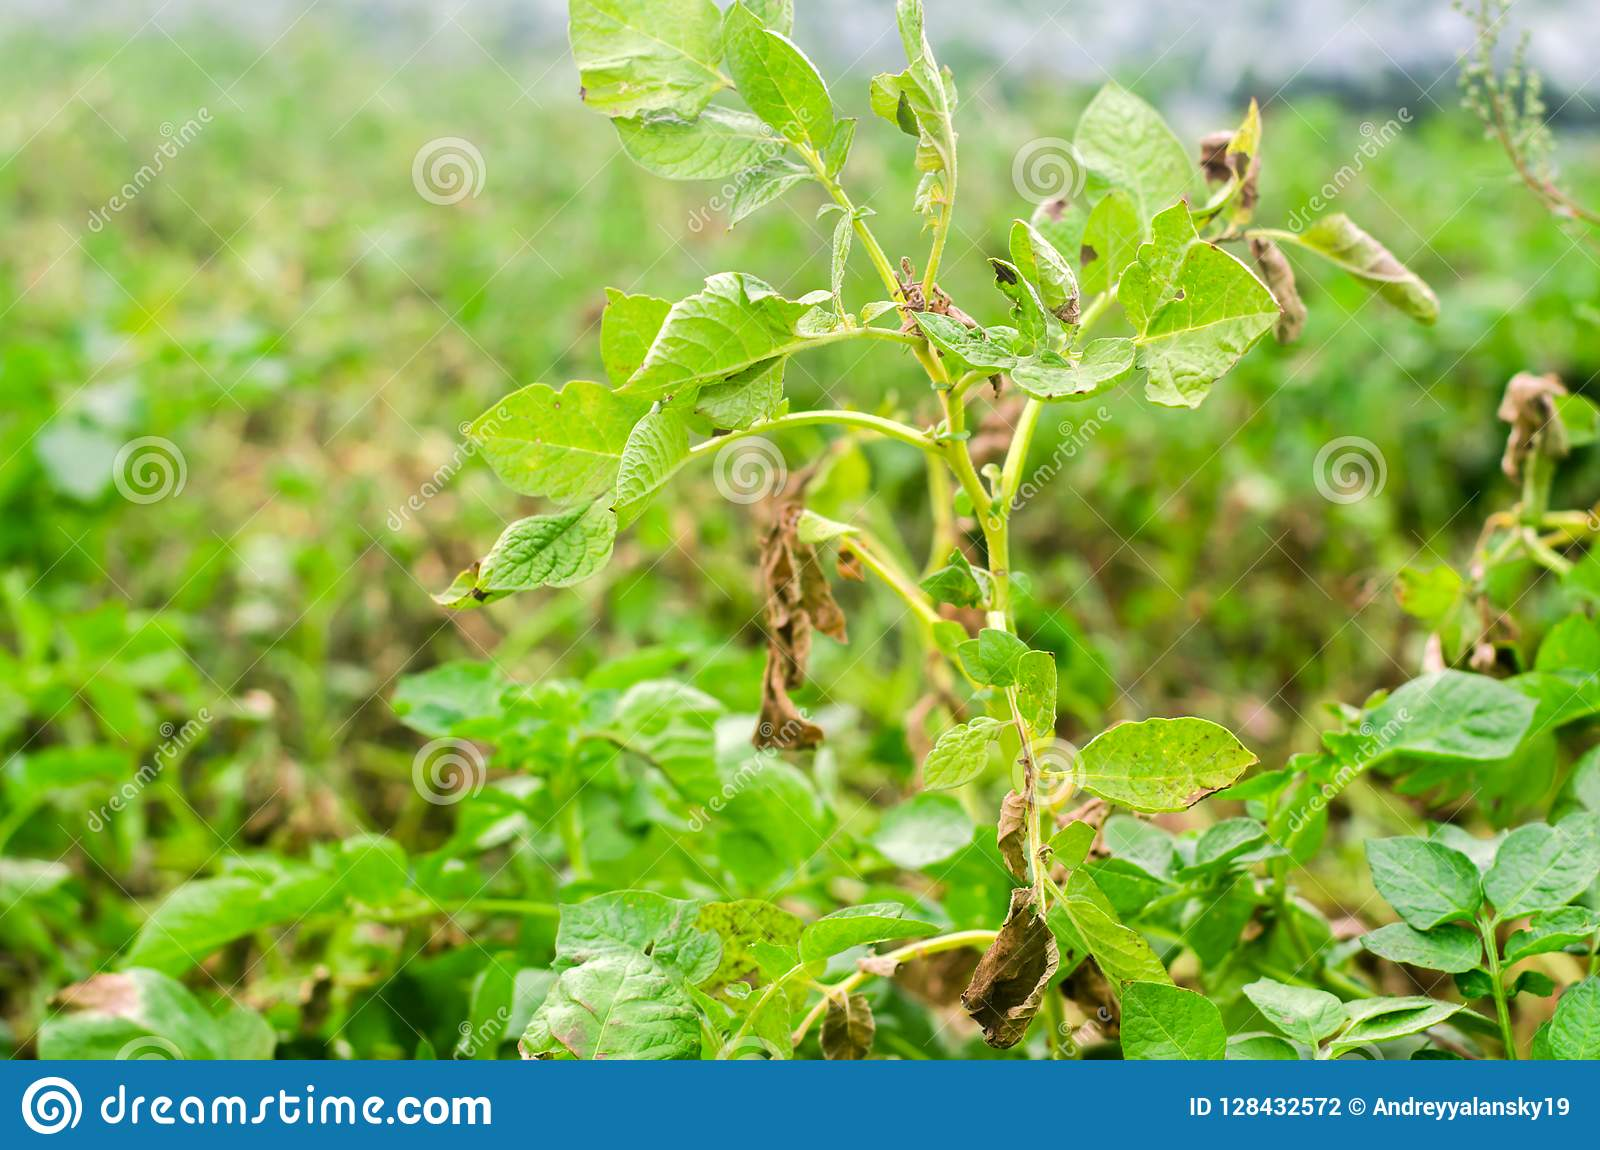 Leaves Of Potato With Diseases. Plant Of Potato Stricken Phytophthora Phytophthora Infestans In the field. Close Up. vegetables.